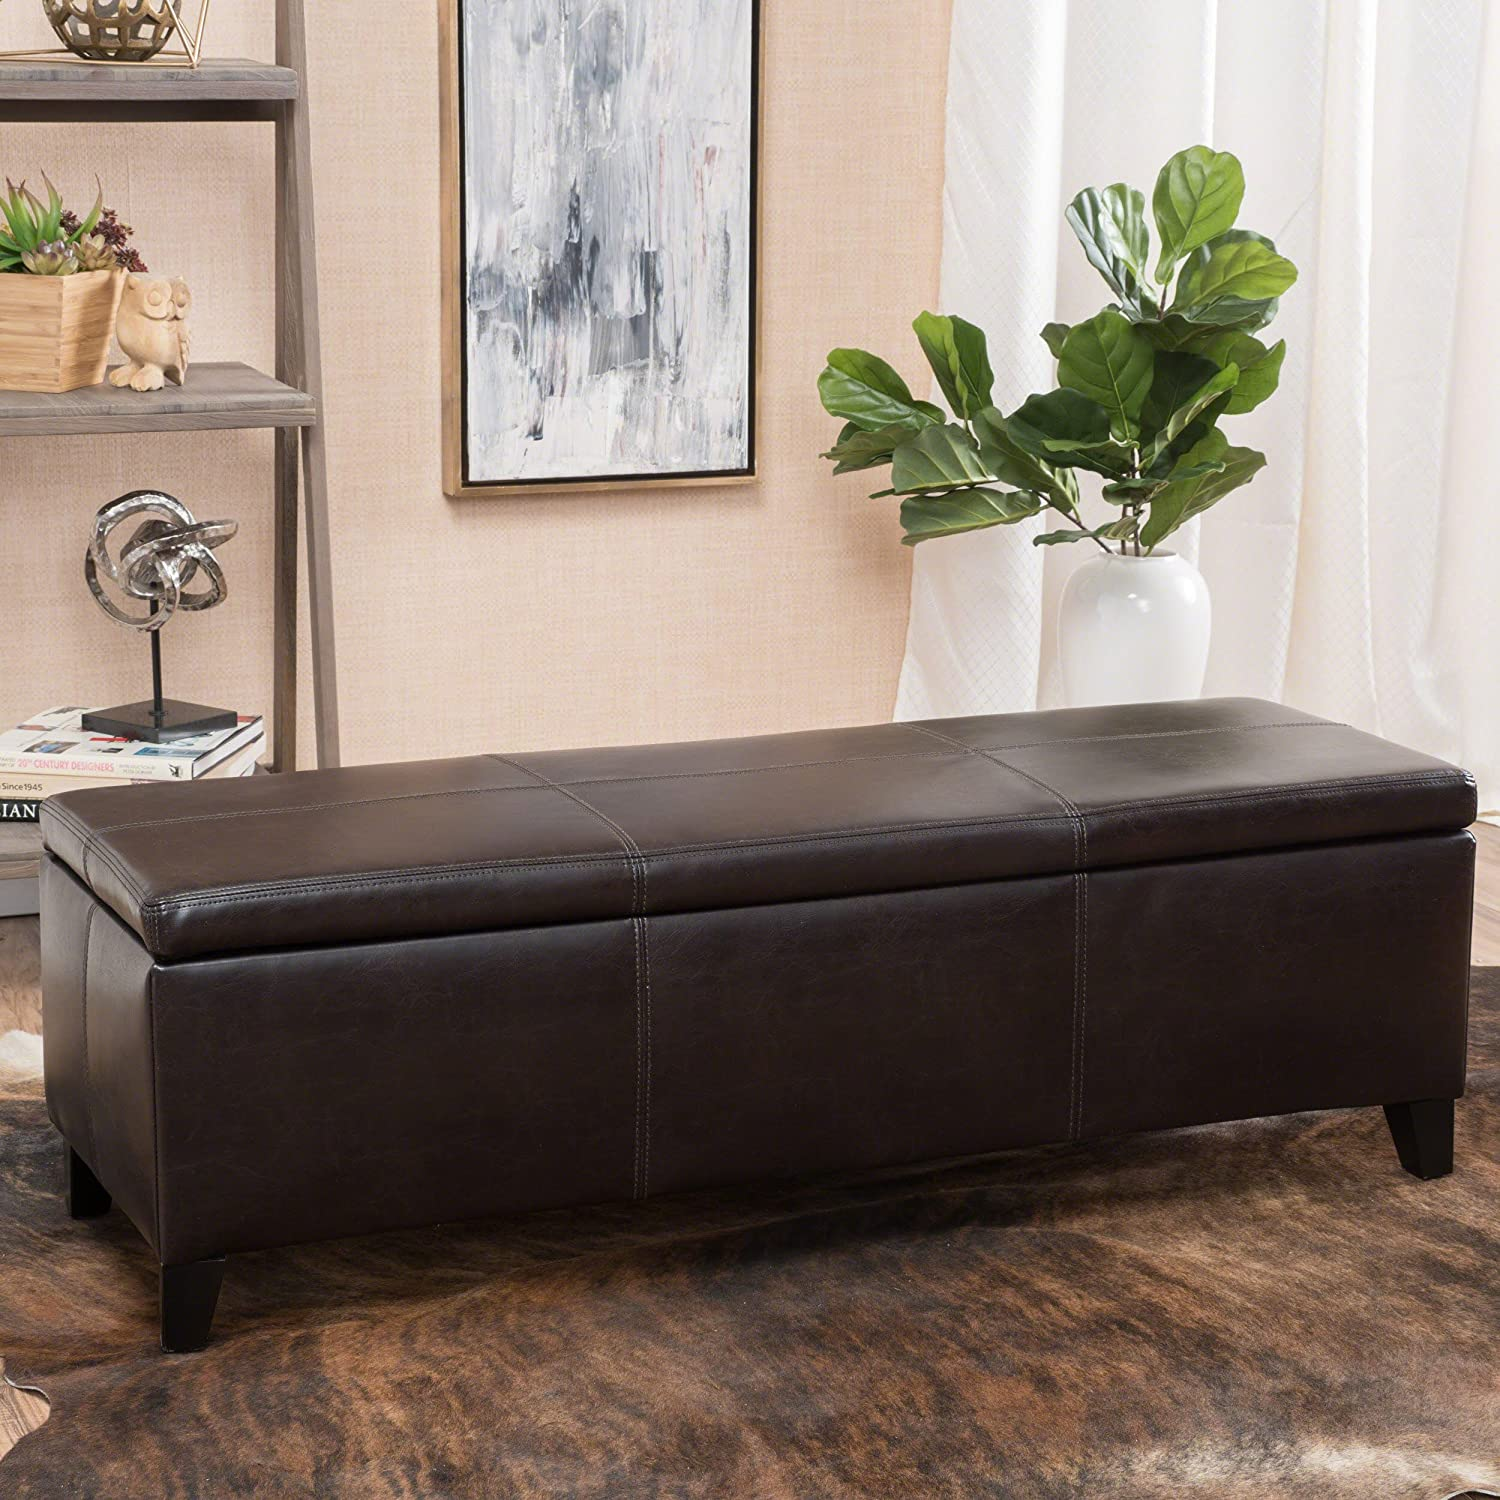 Miraculous Christopher Knight Home Living Deal Furniture Skyler Faux Leather Storage Ottoman Bench In Brown Machost Co Dining Chair Design Ideas Machostcouk